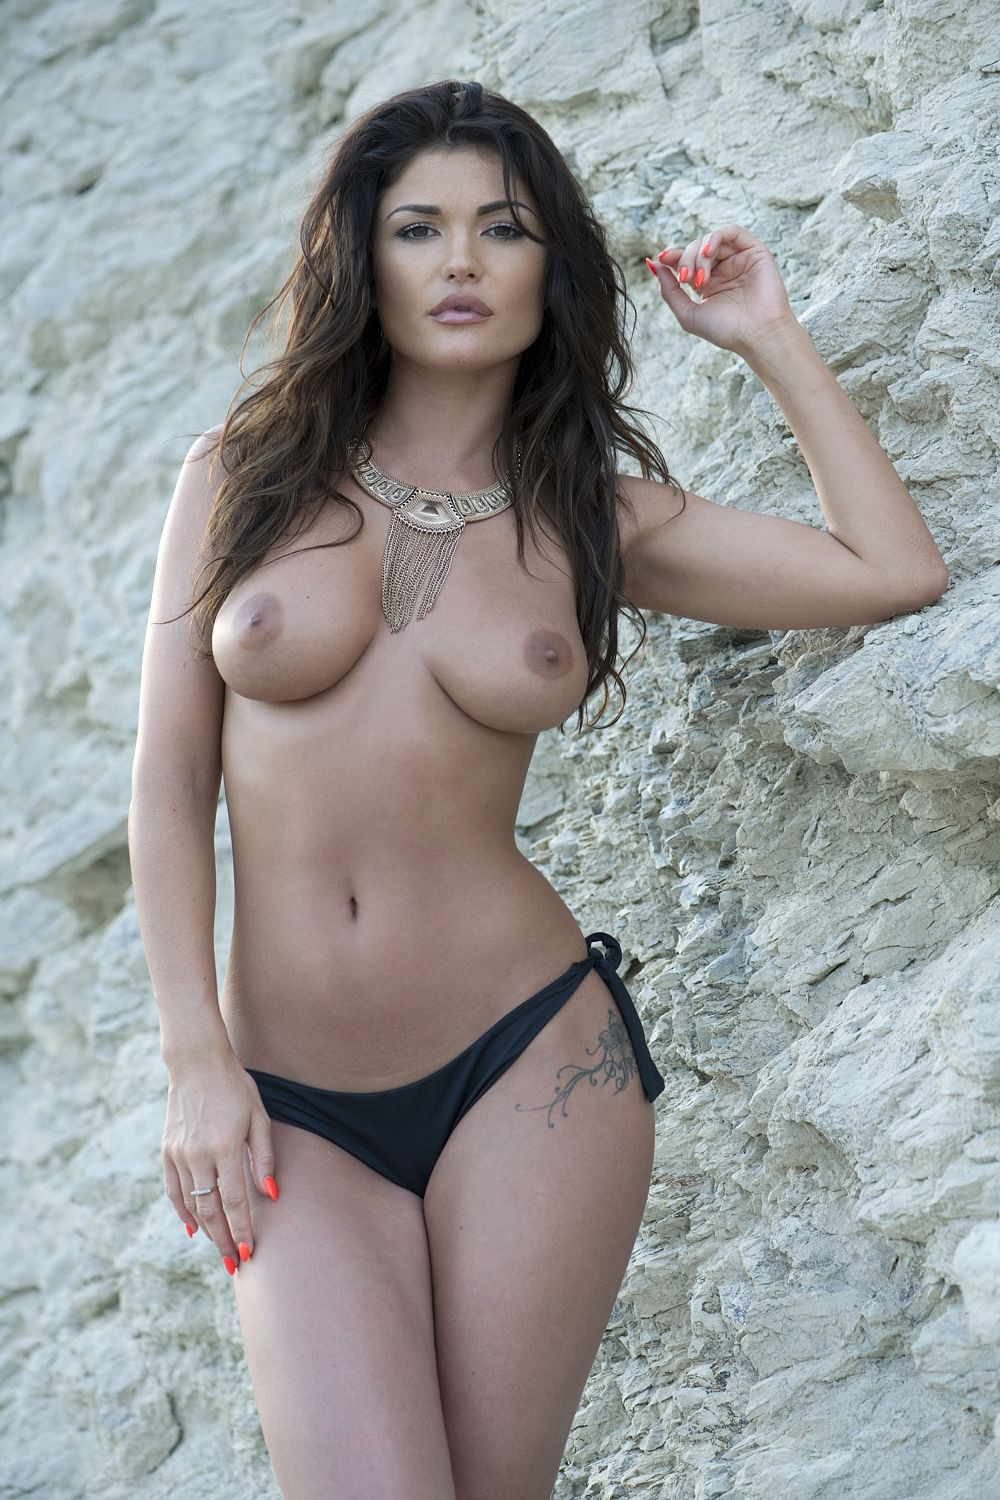 India Reynolds Topless 2 TheFappening.nu